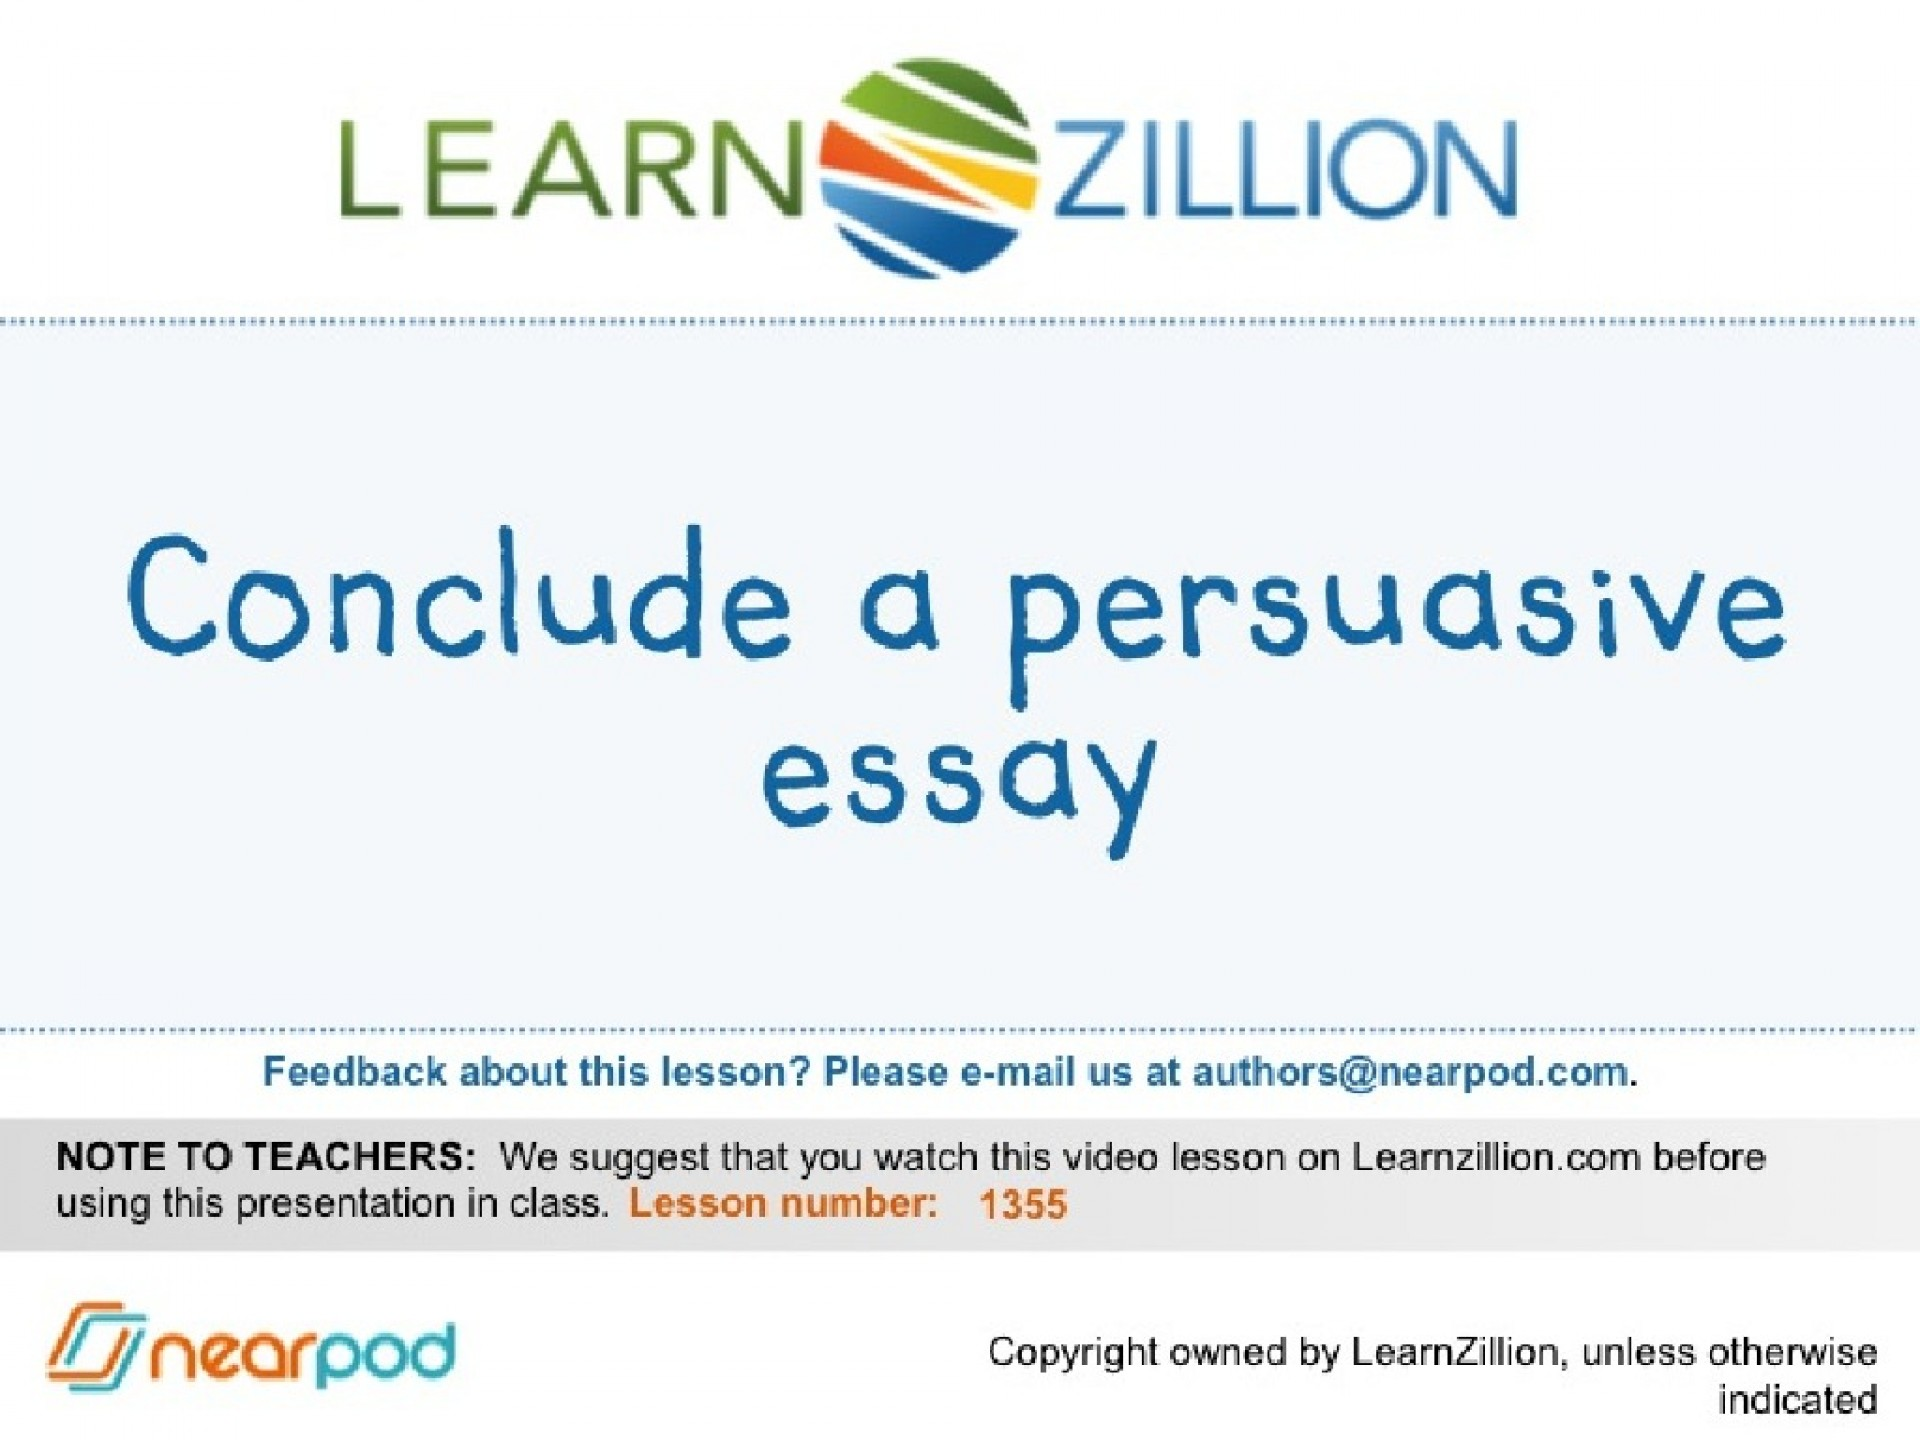 007 Conclusion To Persuasive Essay Iconflashawsaccesskeyidakiainyagm2ywp2owqbaexpires2147483647signaturebvnb2b2ce0hpp5ysyrqscd3n6n743d1386778019 Outstanding Great Conclusions Essays Paragraph Example The Strongest A 1920